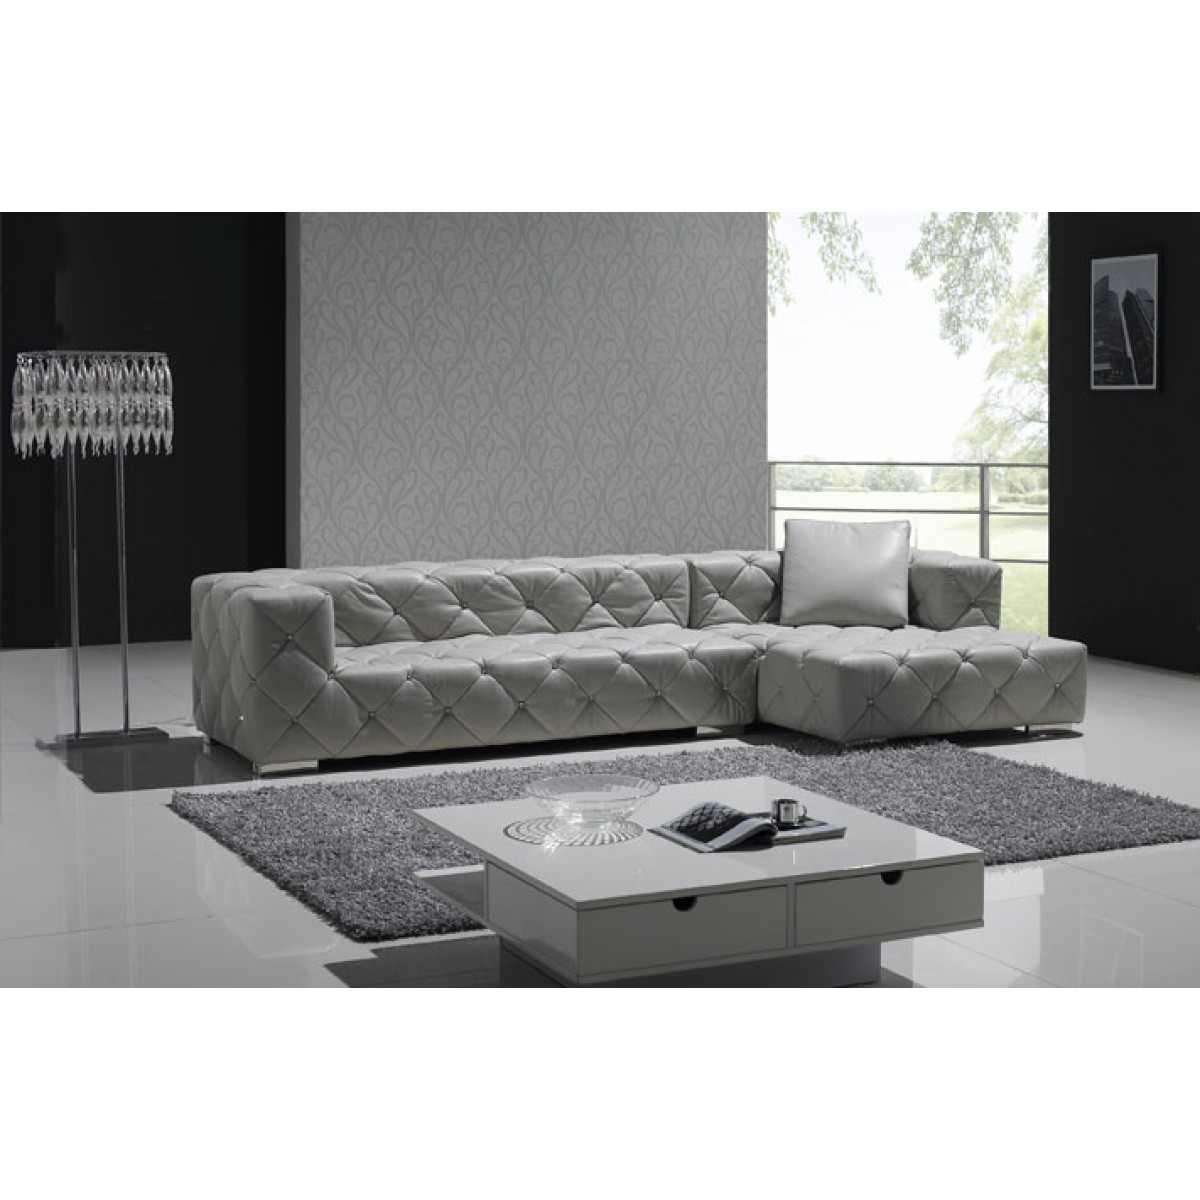 Canape angle chesterfield for Canape d angle arrondi cuir